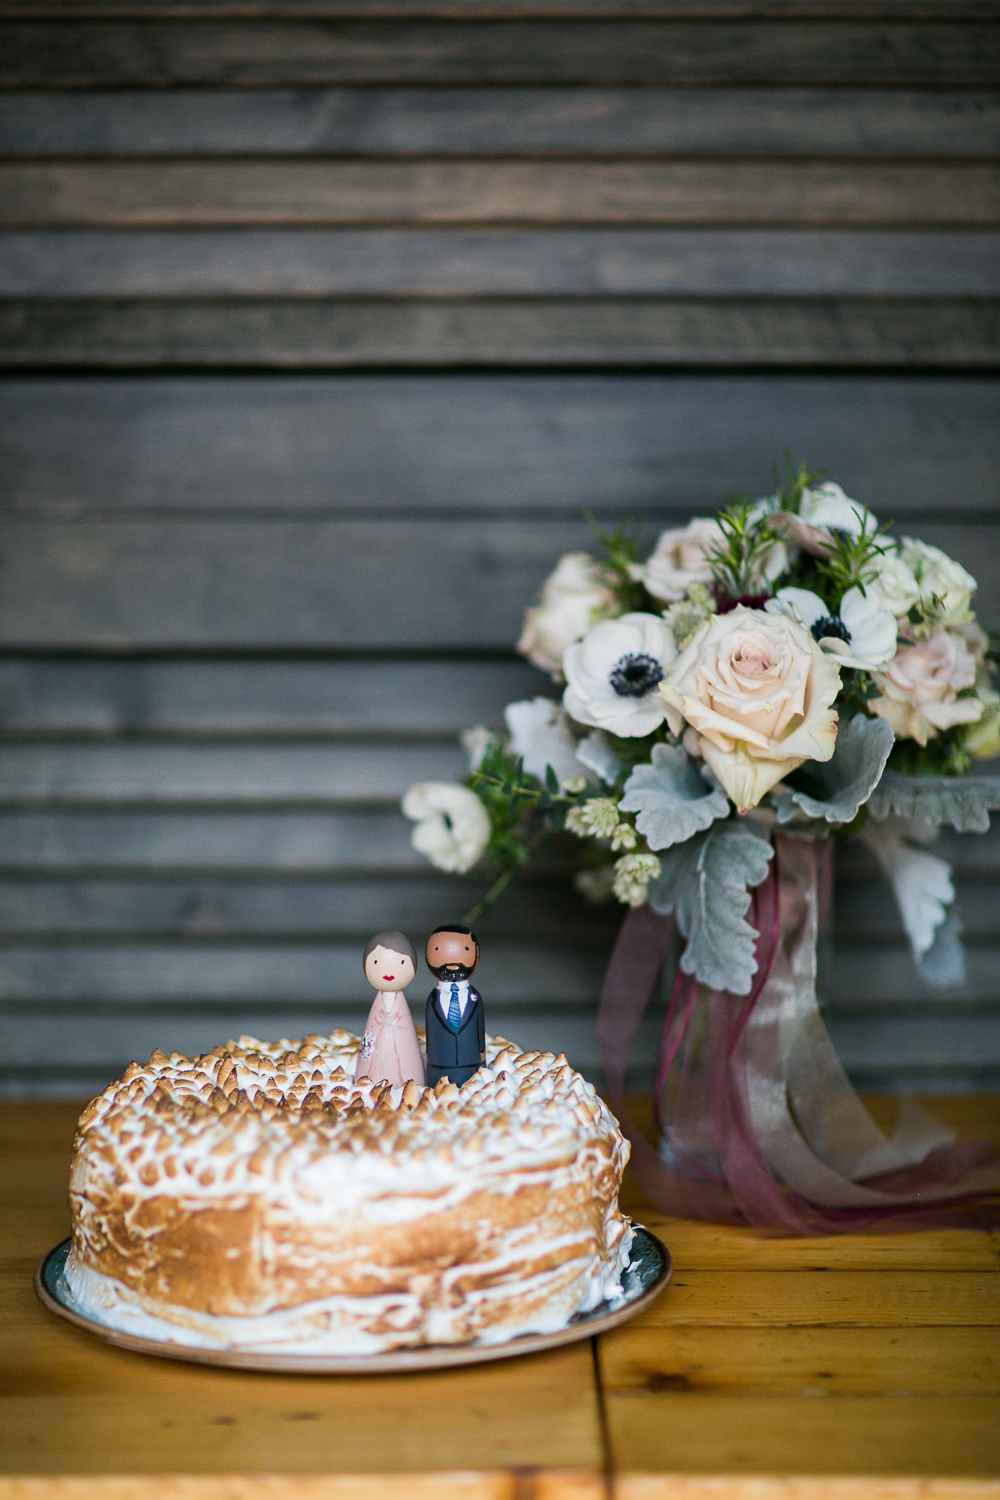 Single tier wedding cake with wooden cake toppers at an Intimate Restaurant Wedding in Manhattan | Upper West Side Intimate Wedding | Kate & Sylvester's wedding in Manhattan.